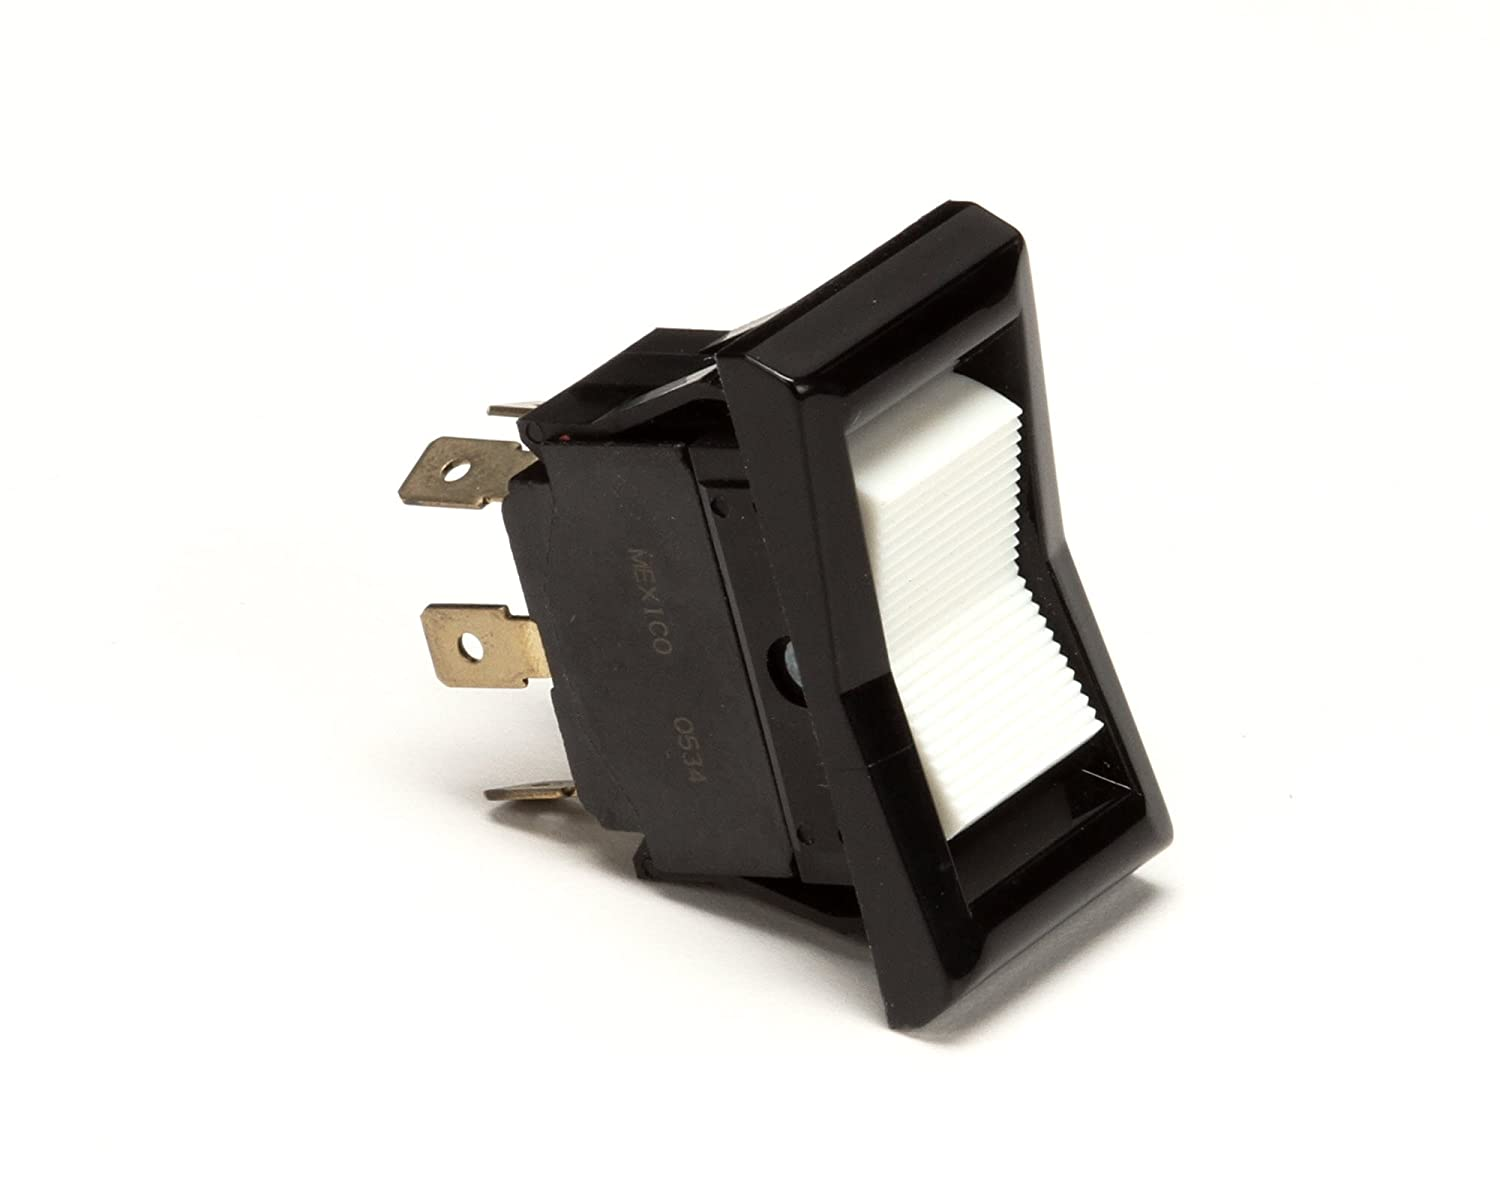 Cres Cor 0808-038 Rocker Switch Max 53% OFF for ! Super beauty product restock quality top! 20A Items 250V Re-Reeled